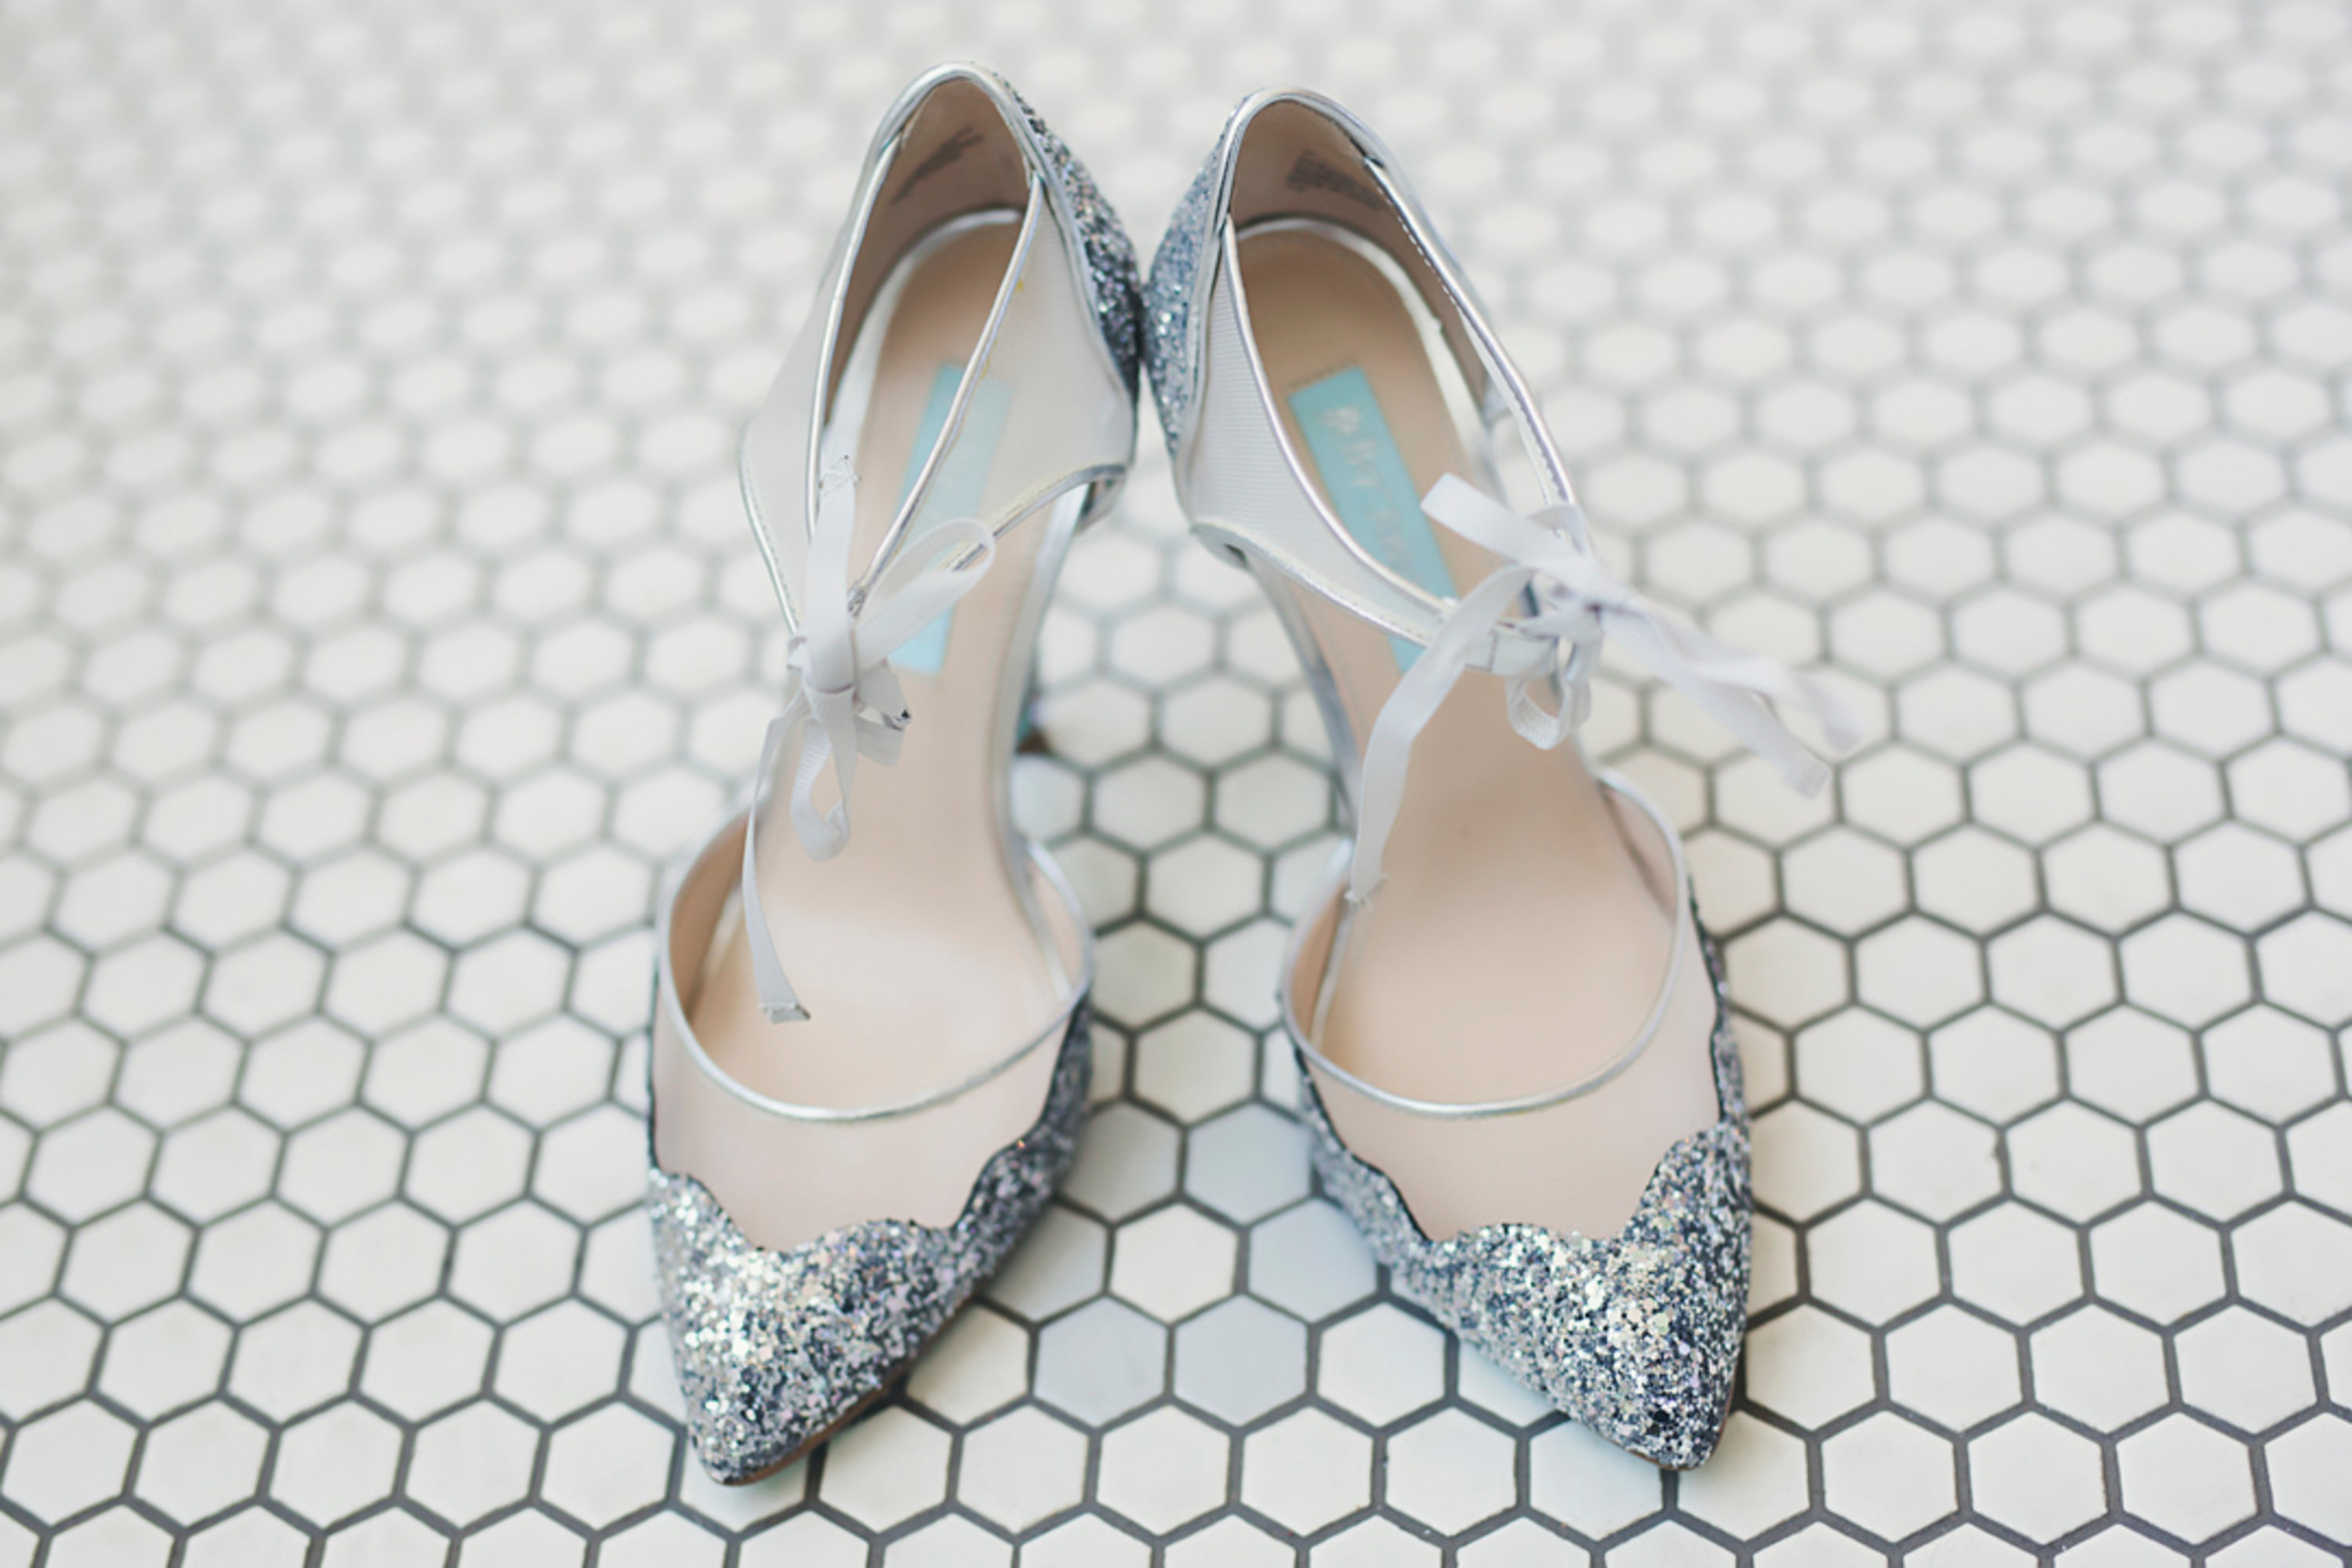 pair of silver glittery high heels with mesh ties on a white and gray tiled floor